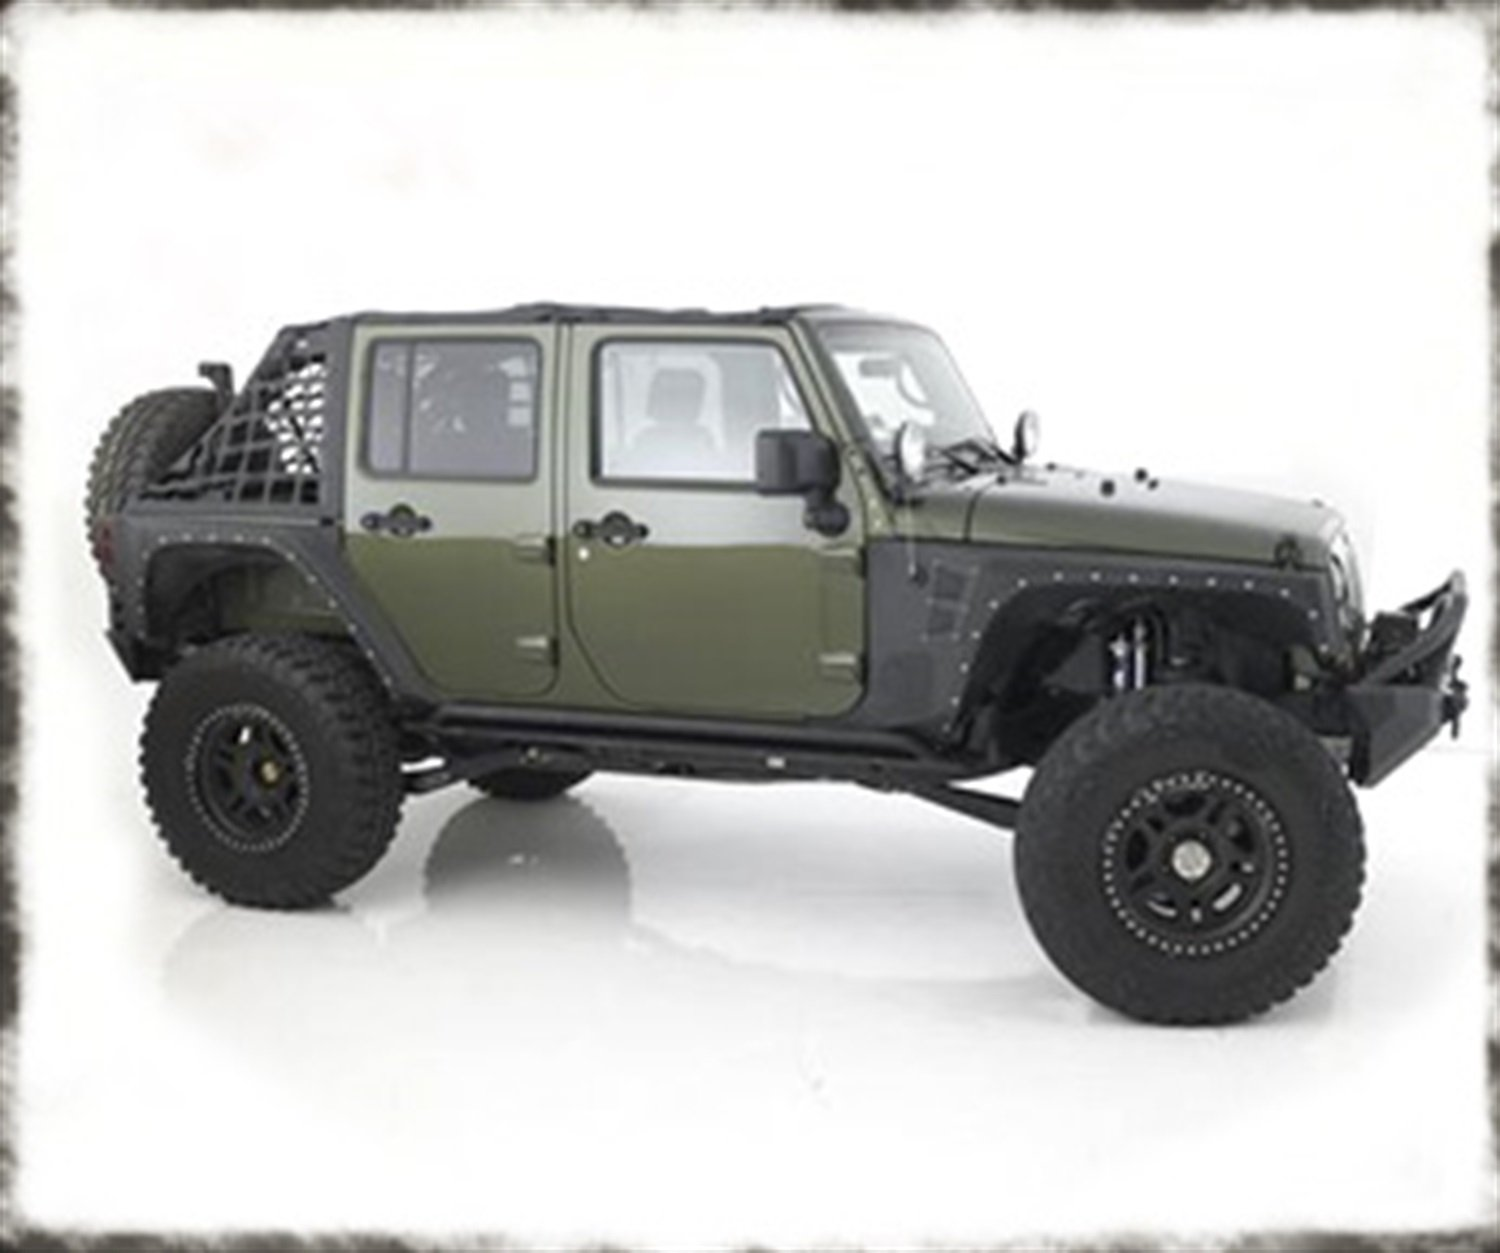 Smittybilt 76837 Front Rear XRC Set Of 4 Fender Flares For 07-15 JK Wrangler